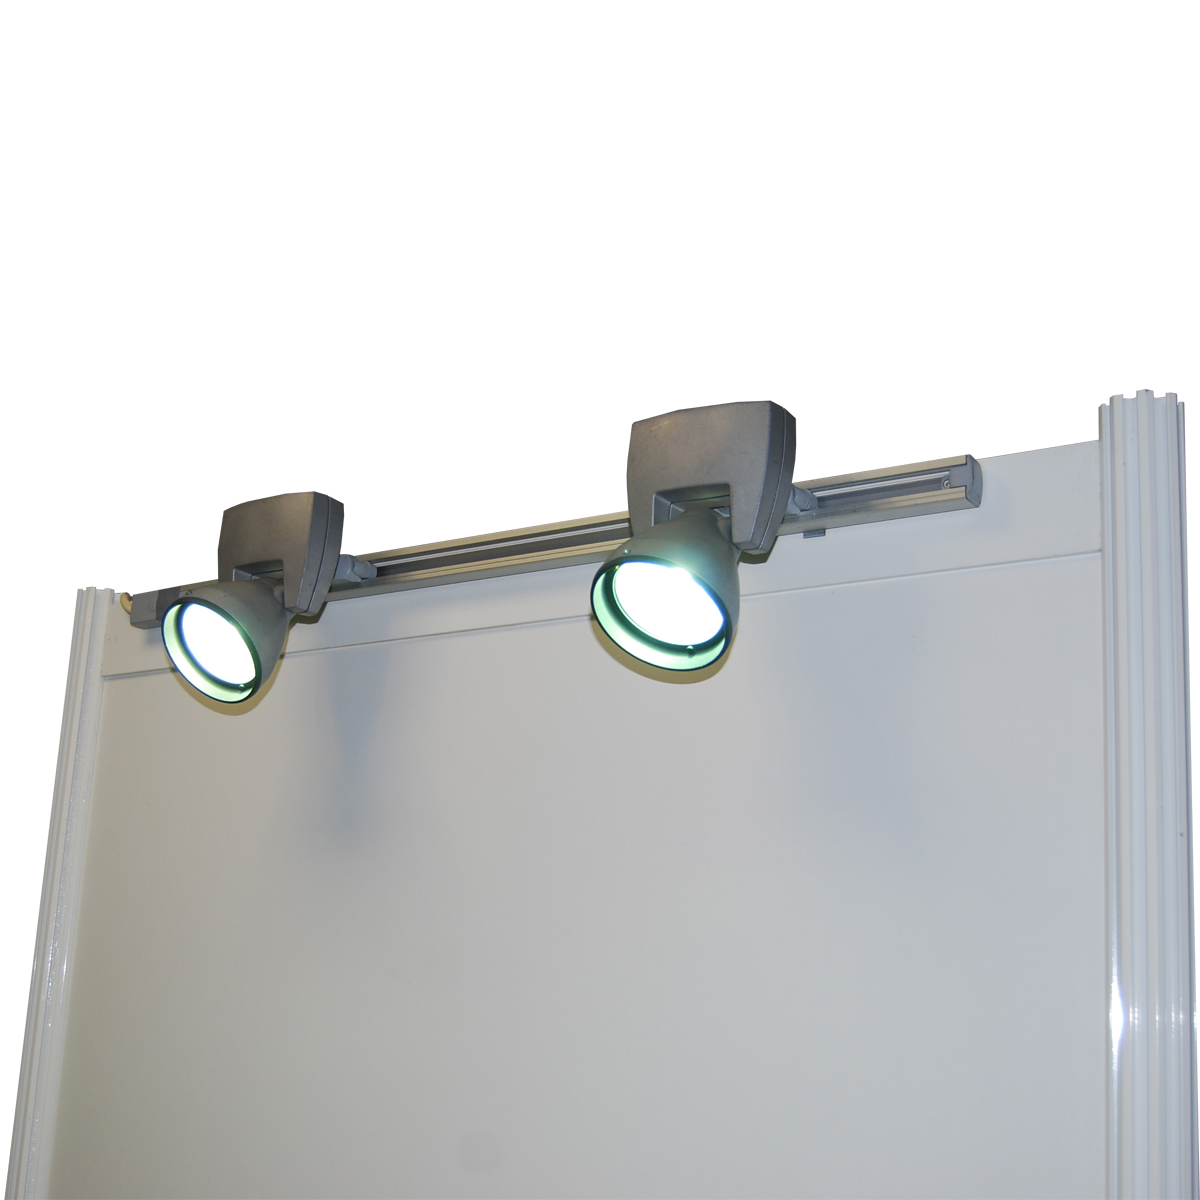 Rail De Spot Rail De 2 Spots Hqi 35w Internation Moduling